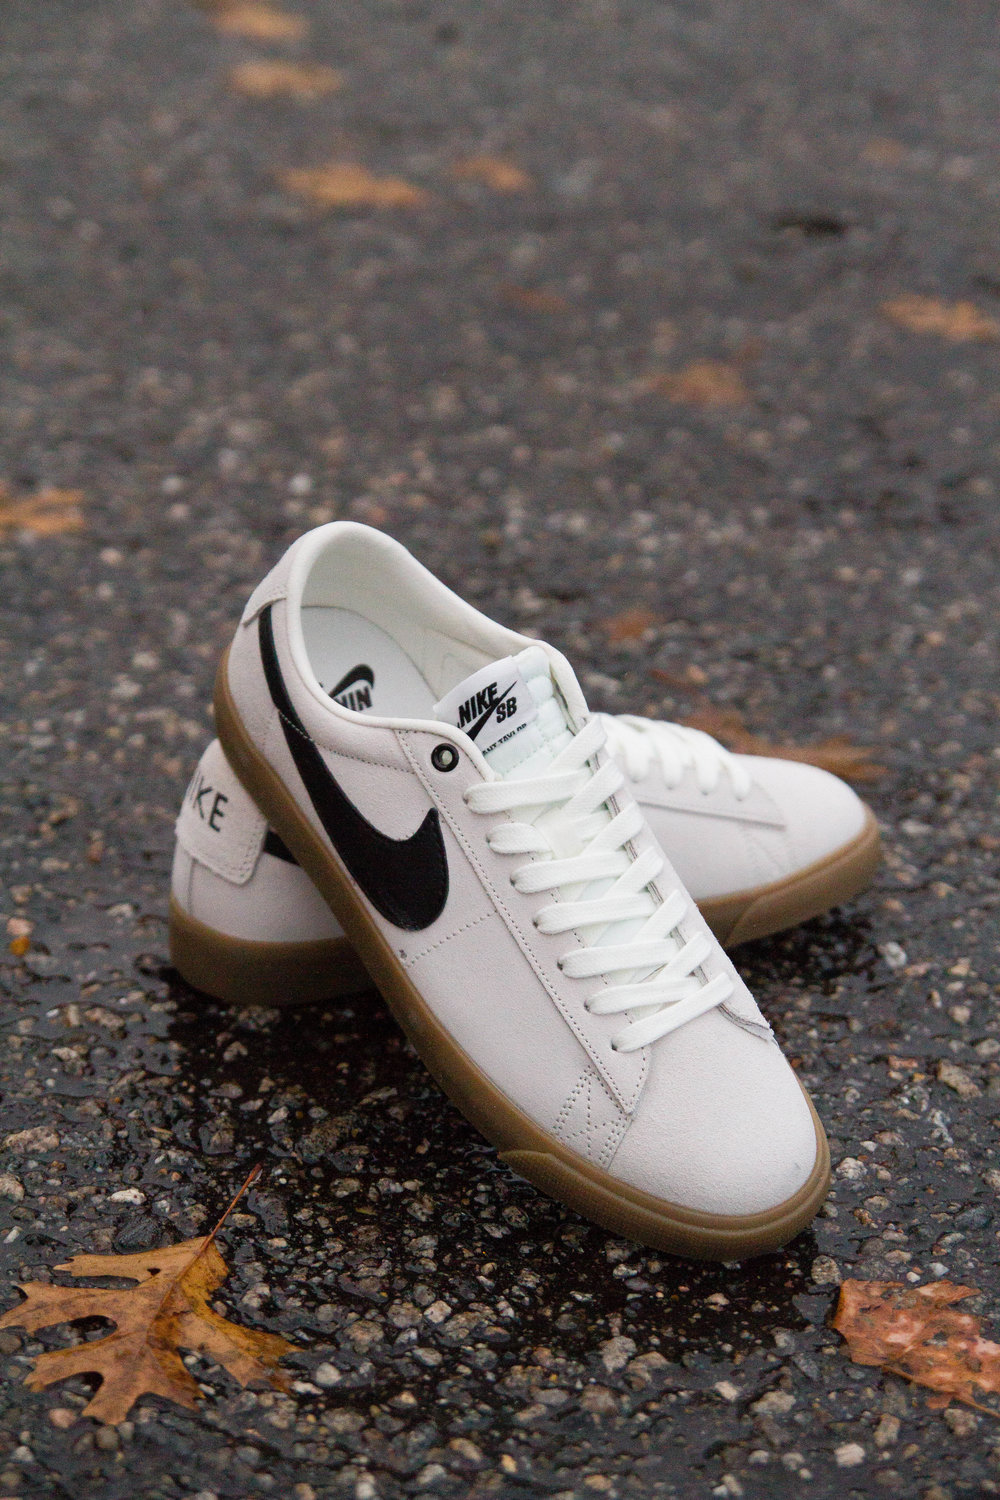 Nike SB Blazer Low GT in Ivory/Black/Gum Now Available